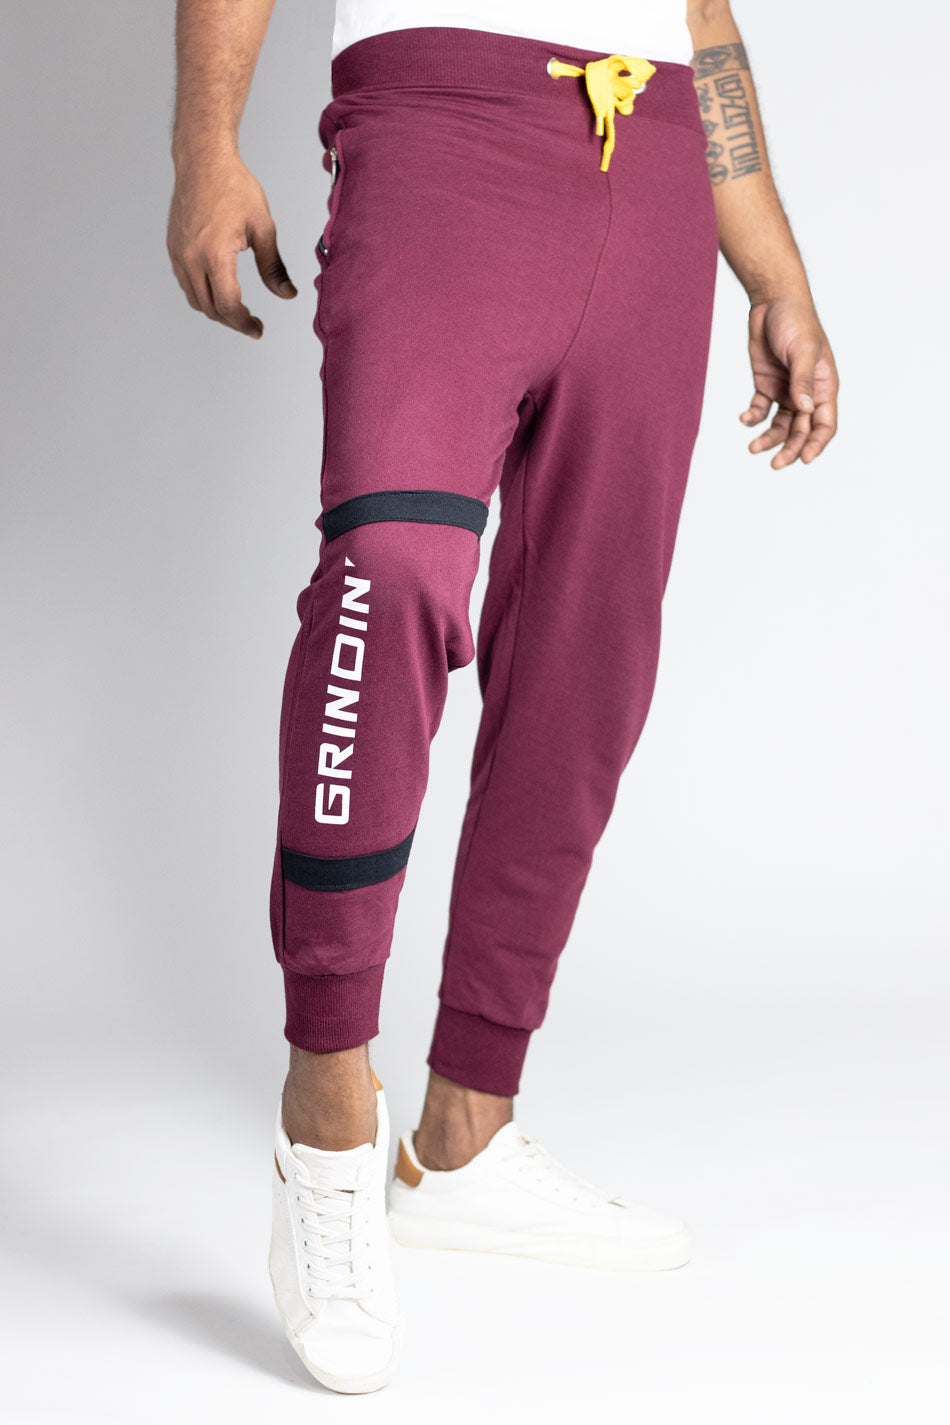 Cotton jogger in burgundy by wildgear